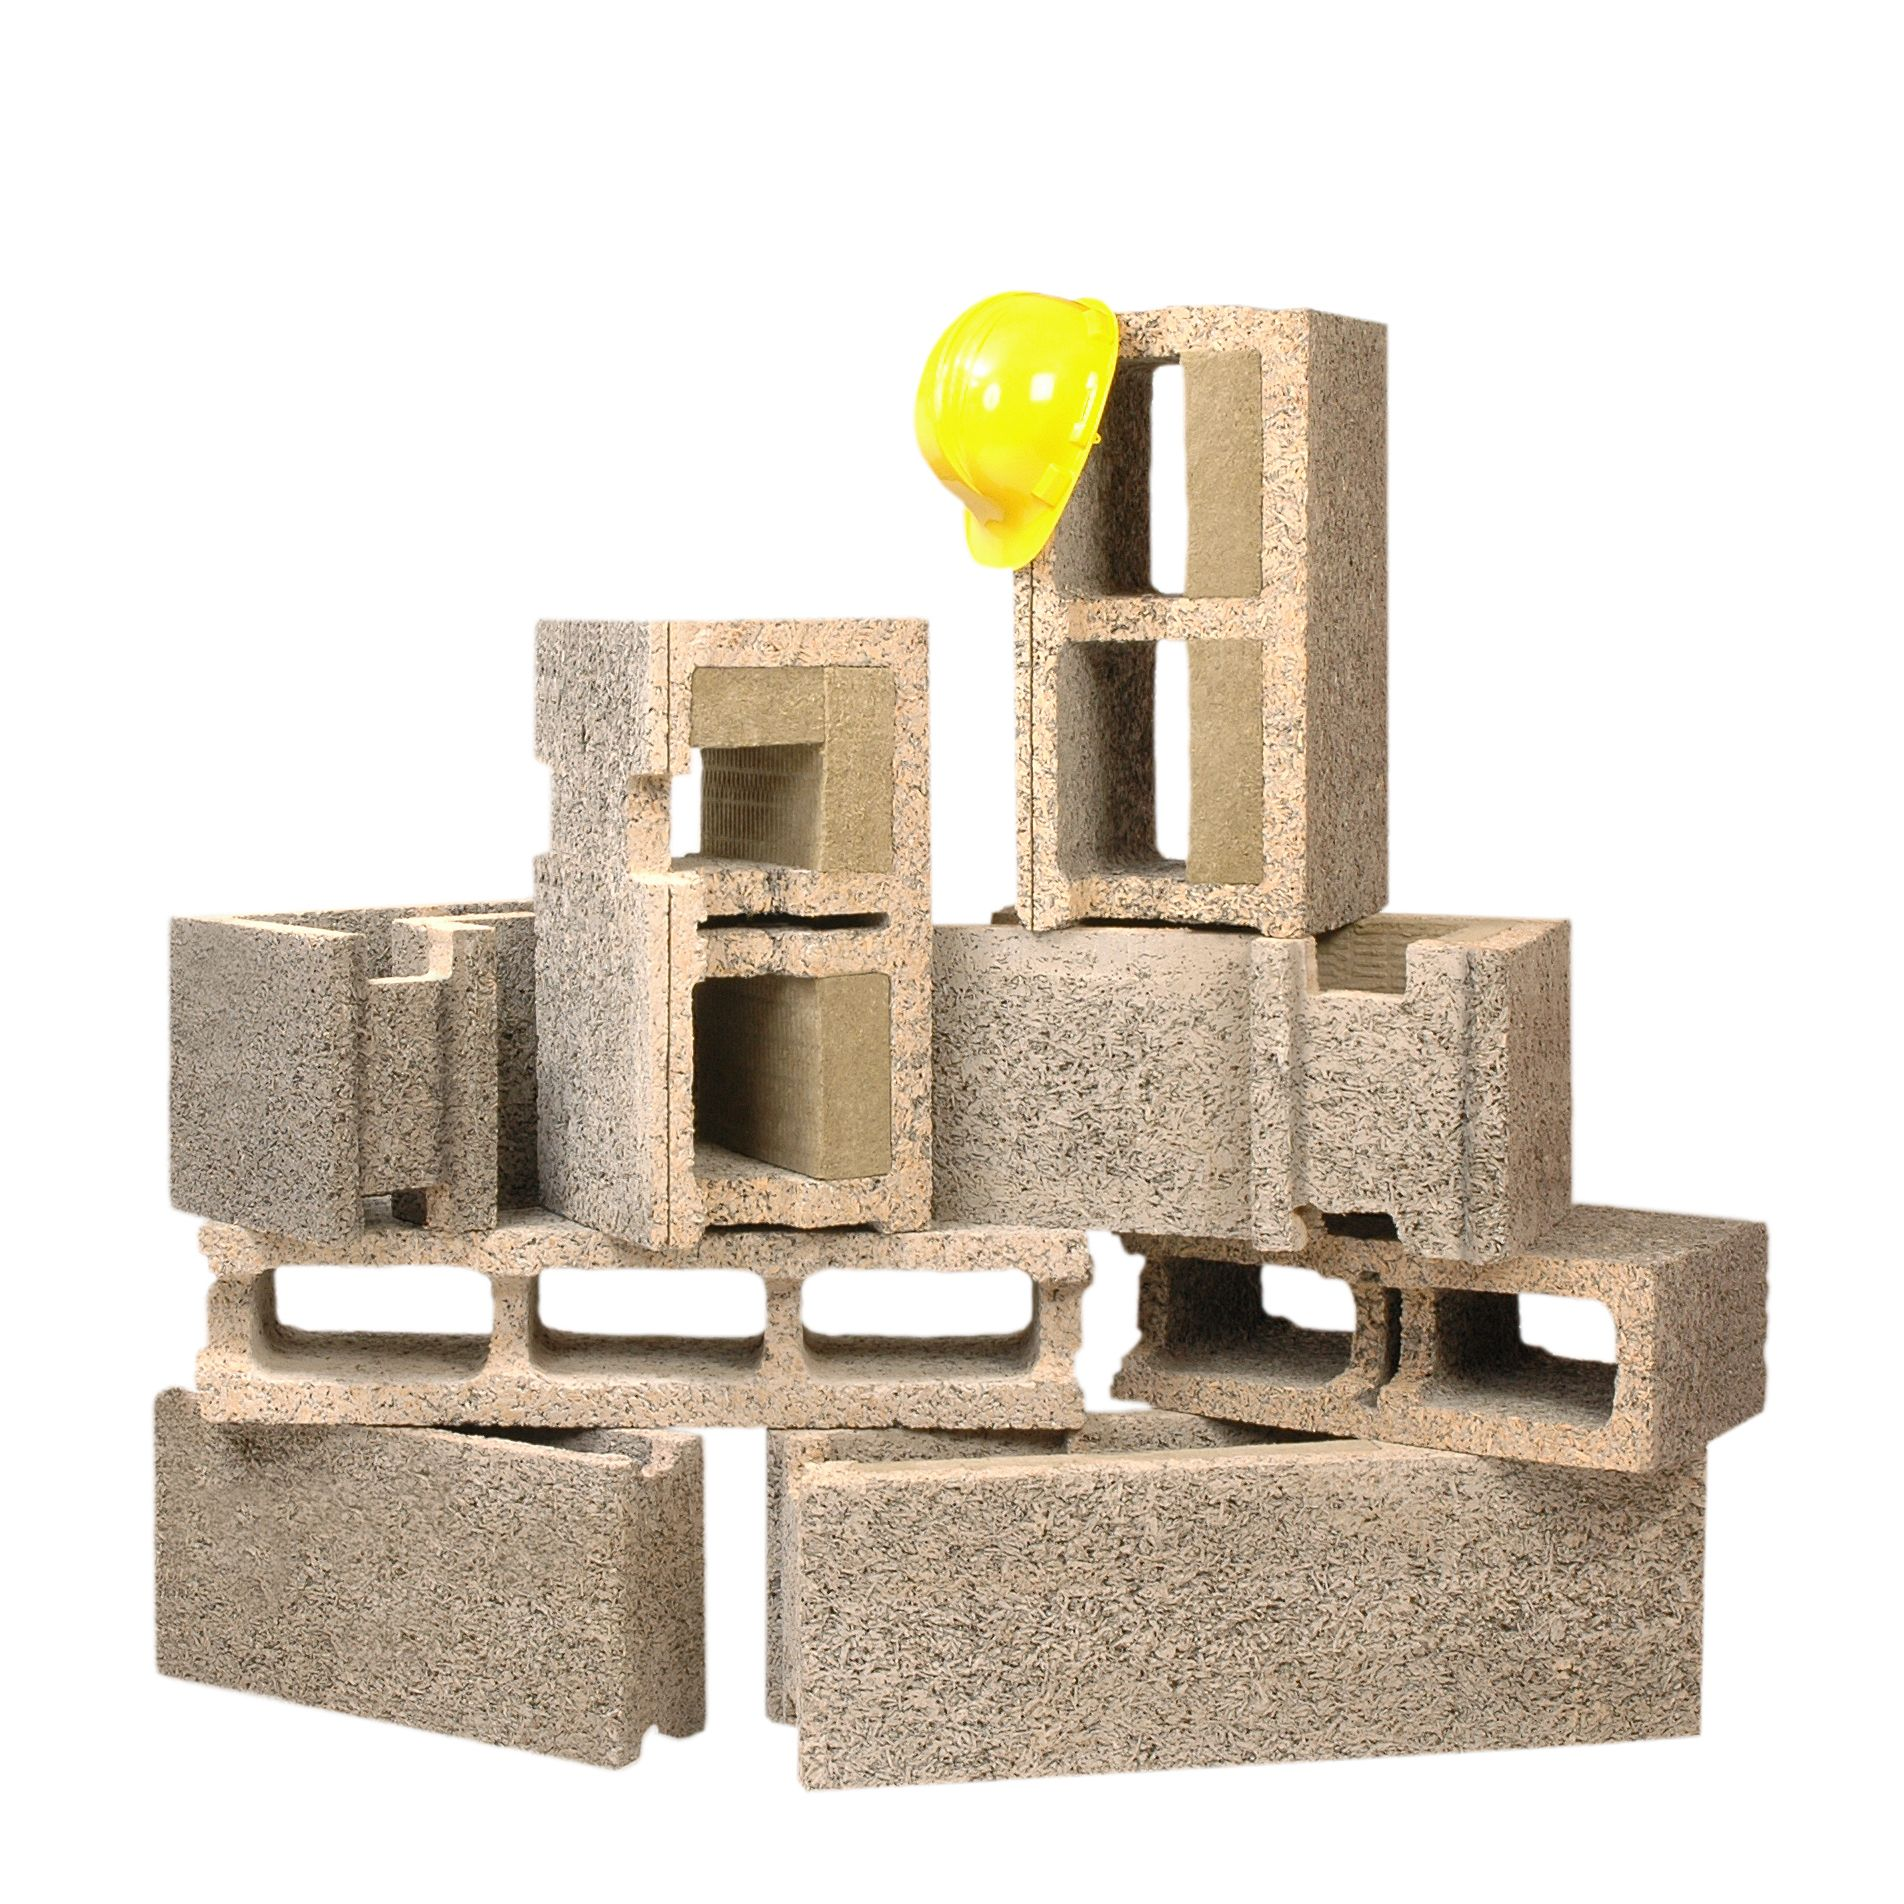 DurisolBuild insulated concrete forms are the only ICF